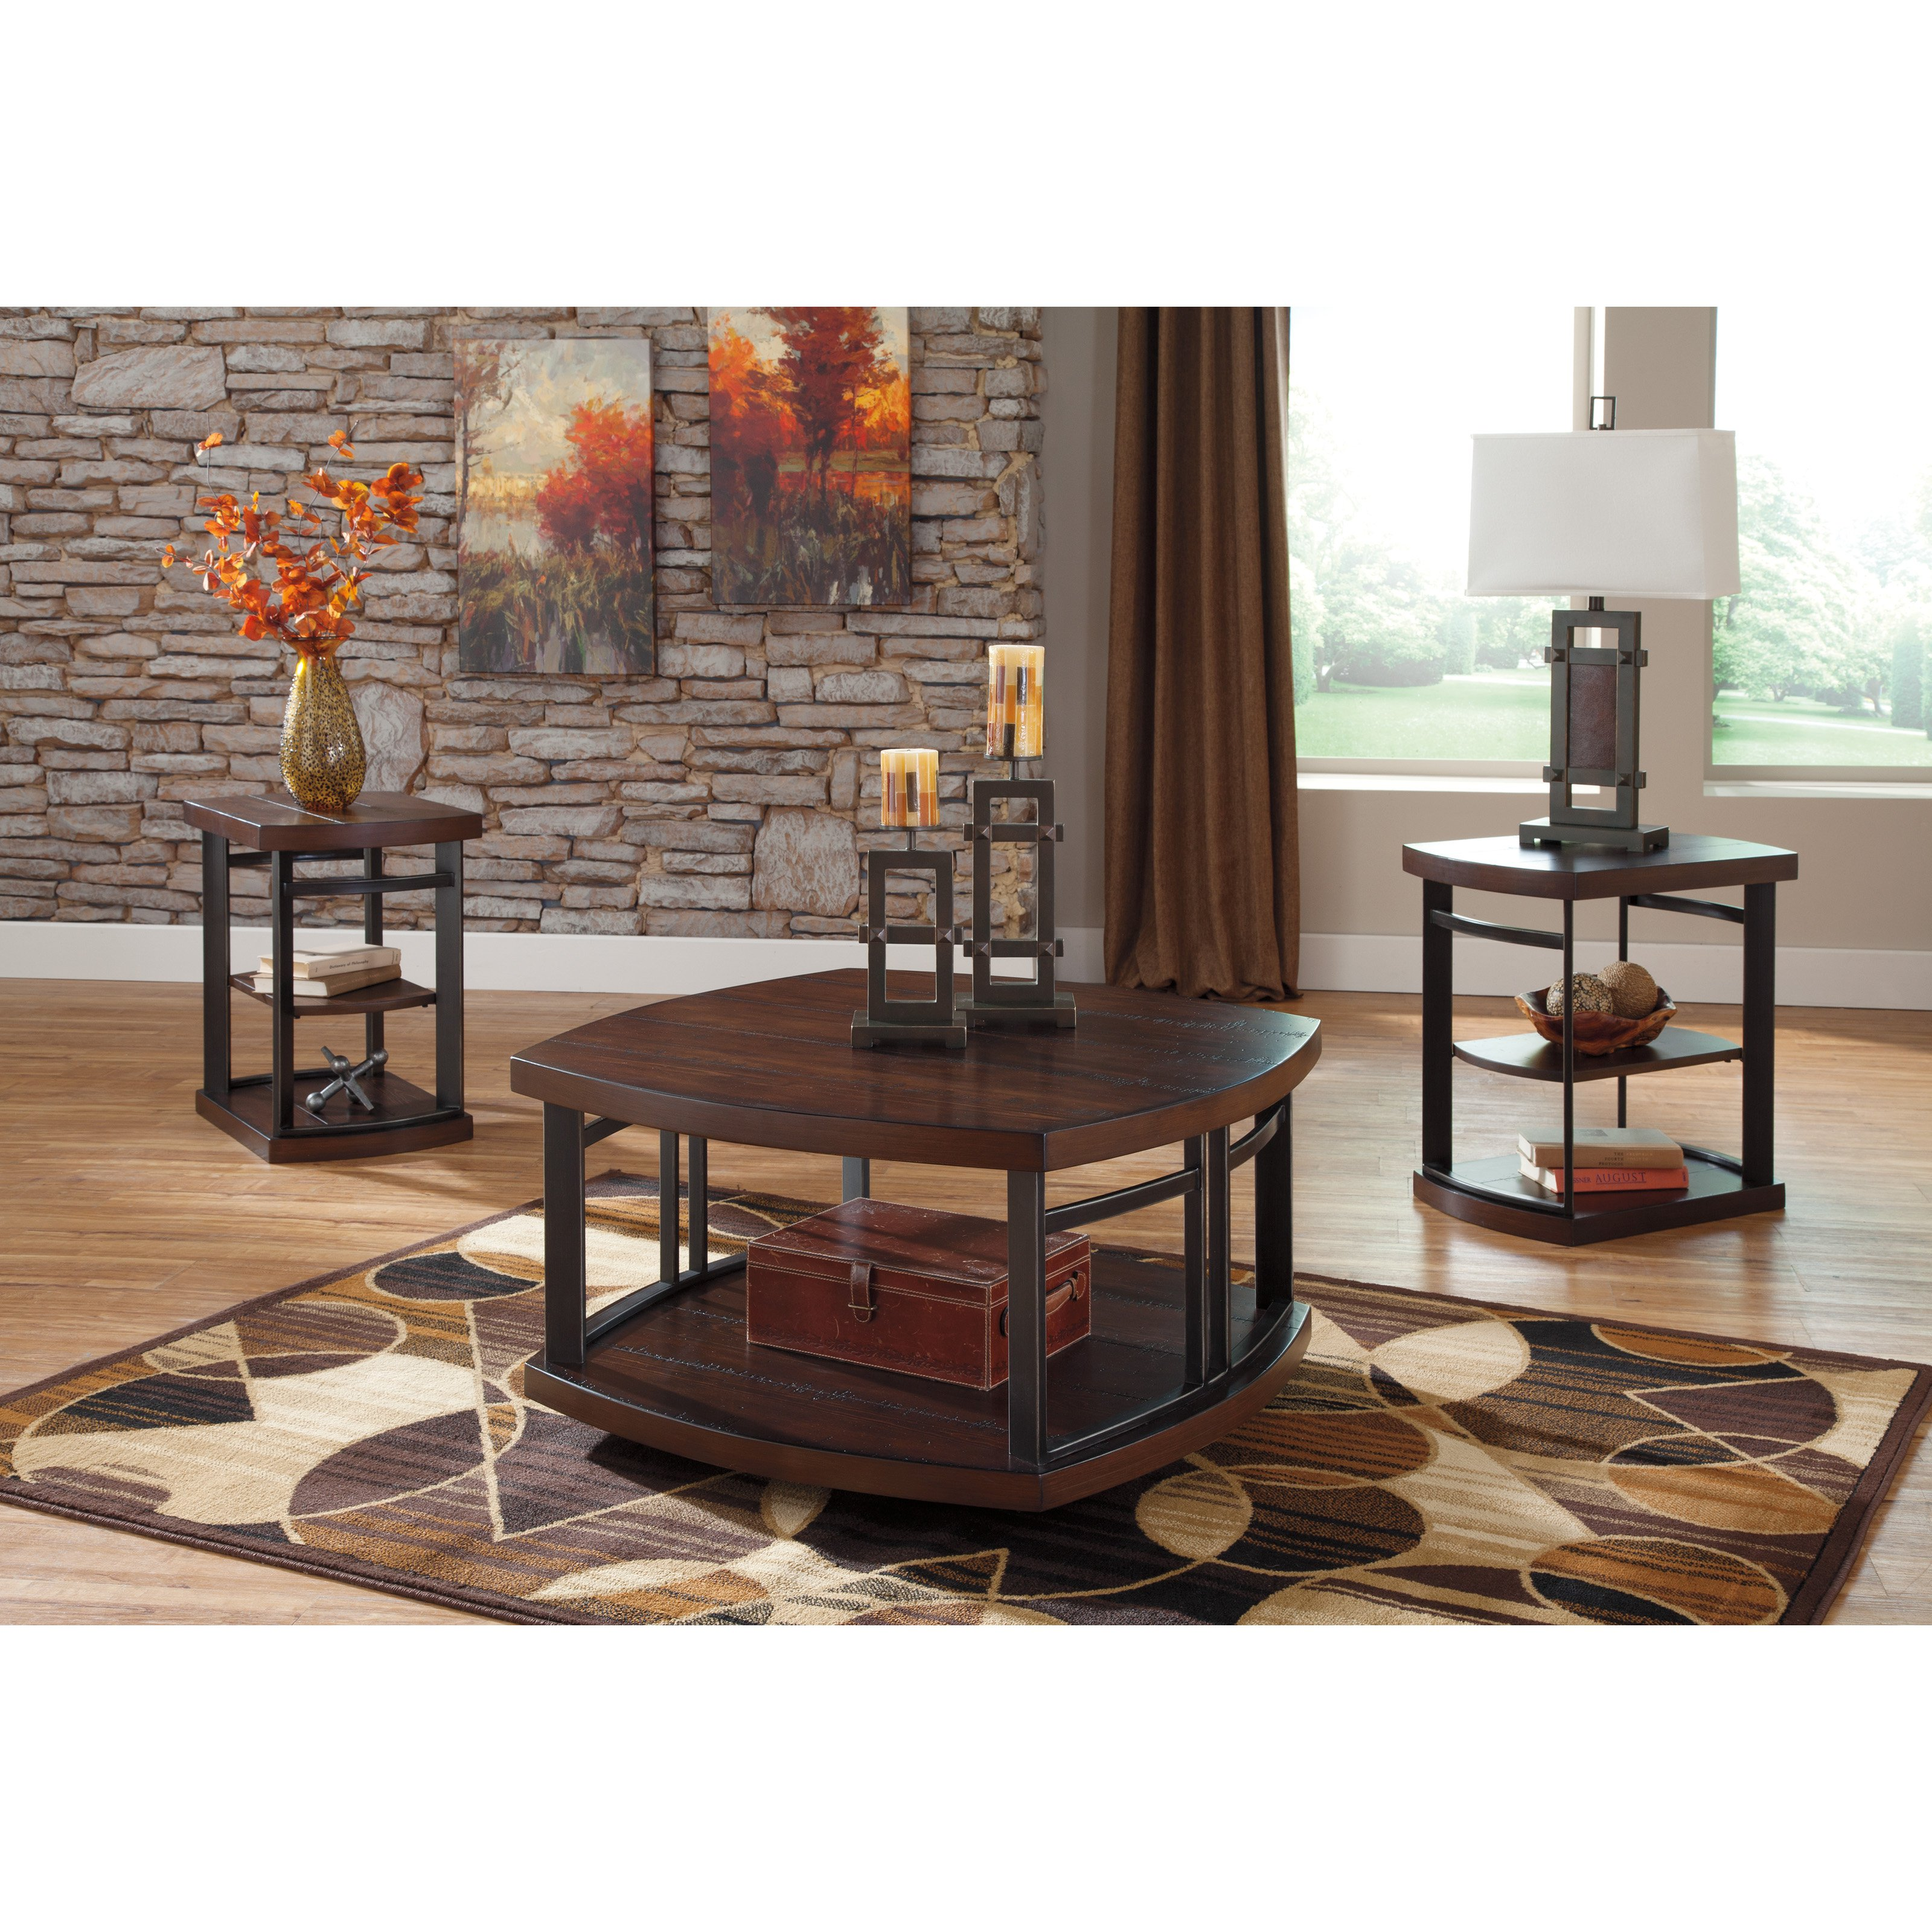 Signature Design by Ashley Challiman 3 Piece Coffee Table Set